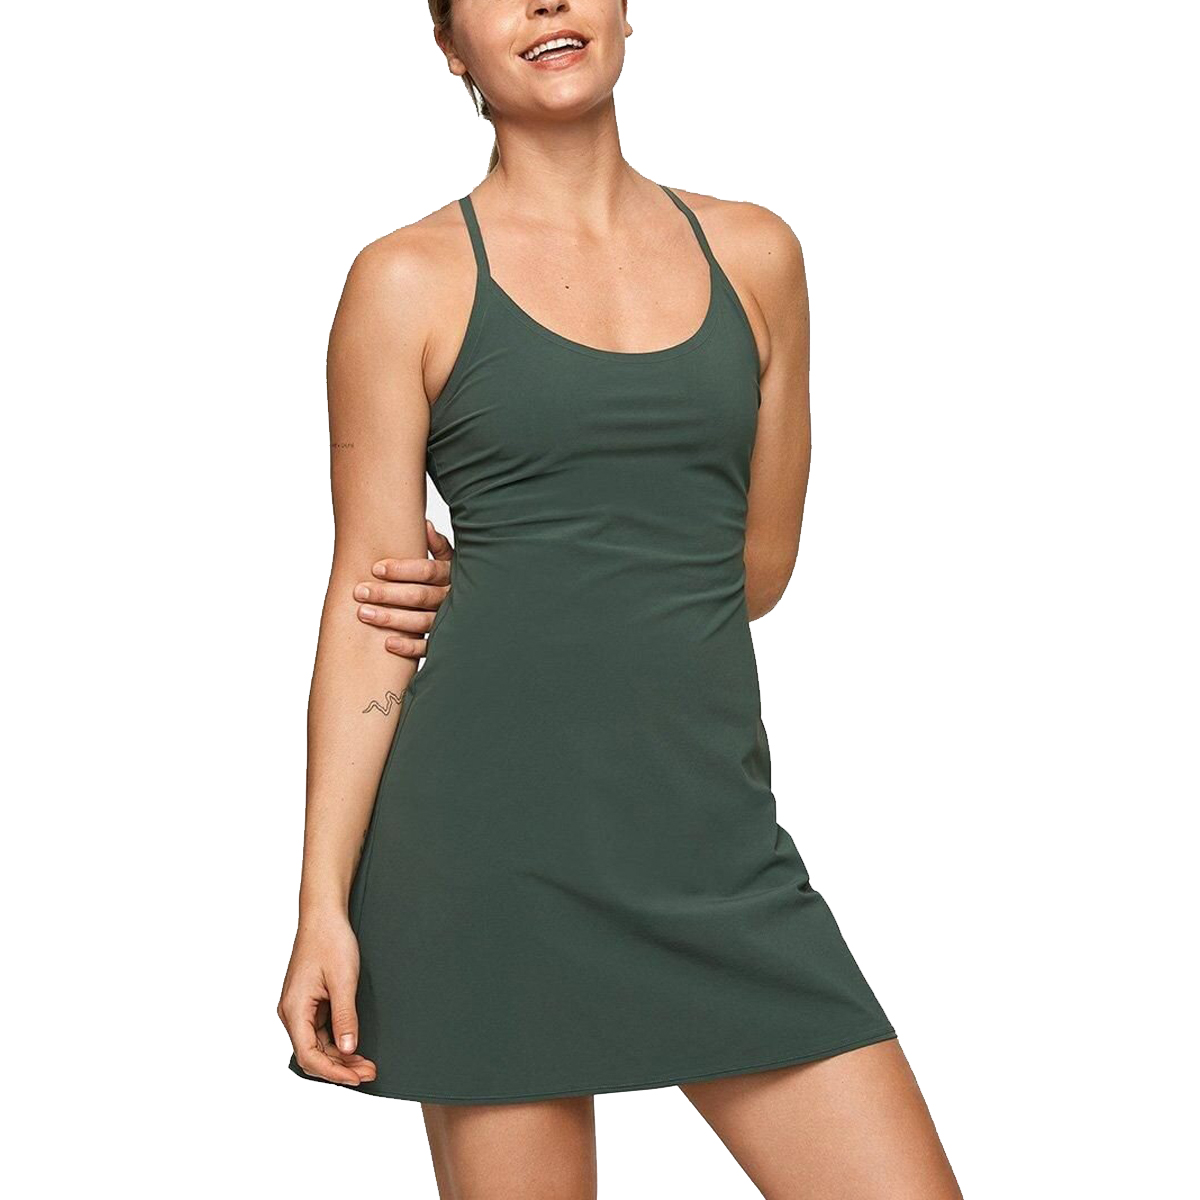 Outdoor Voices The Exercise Dress in Evergreen